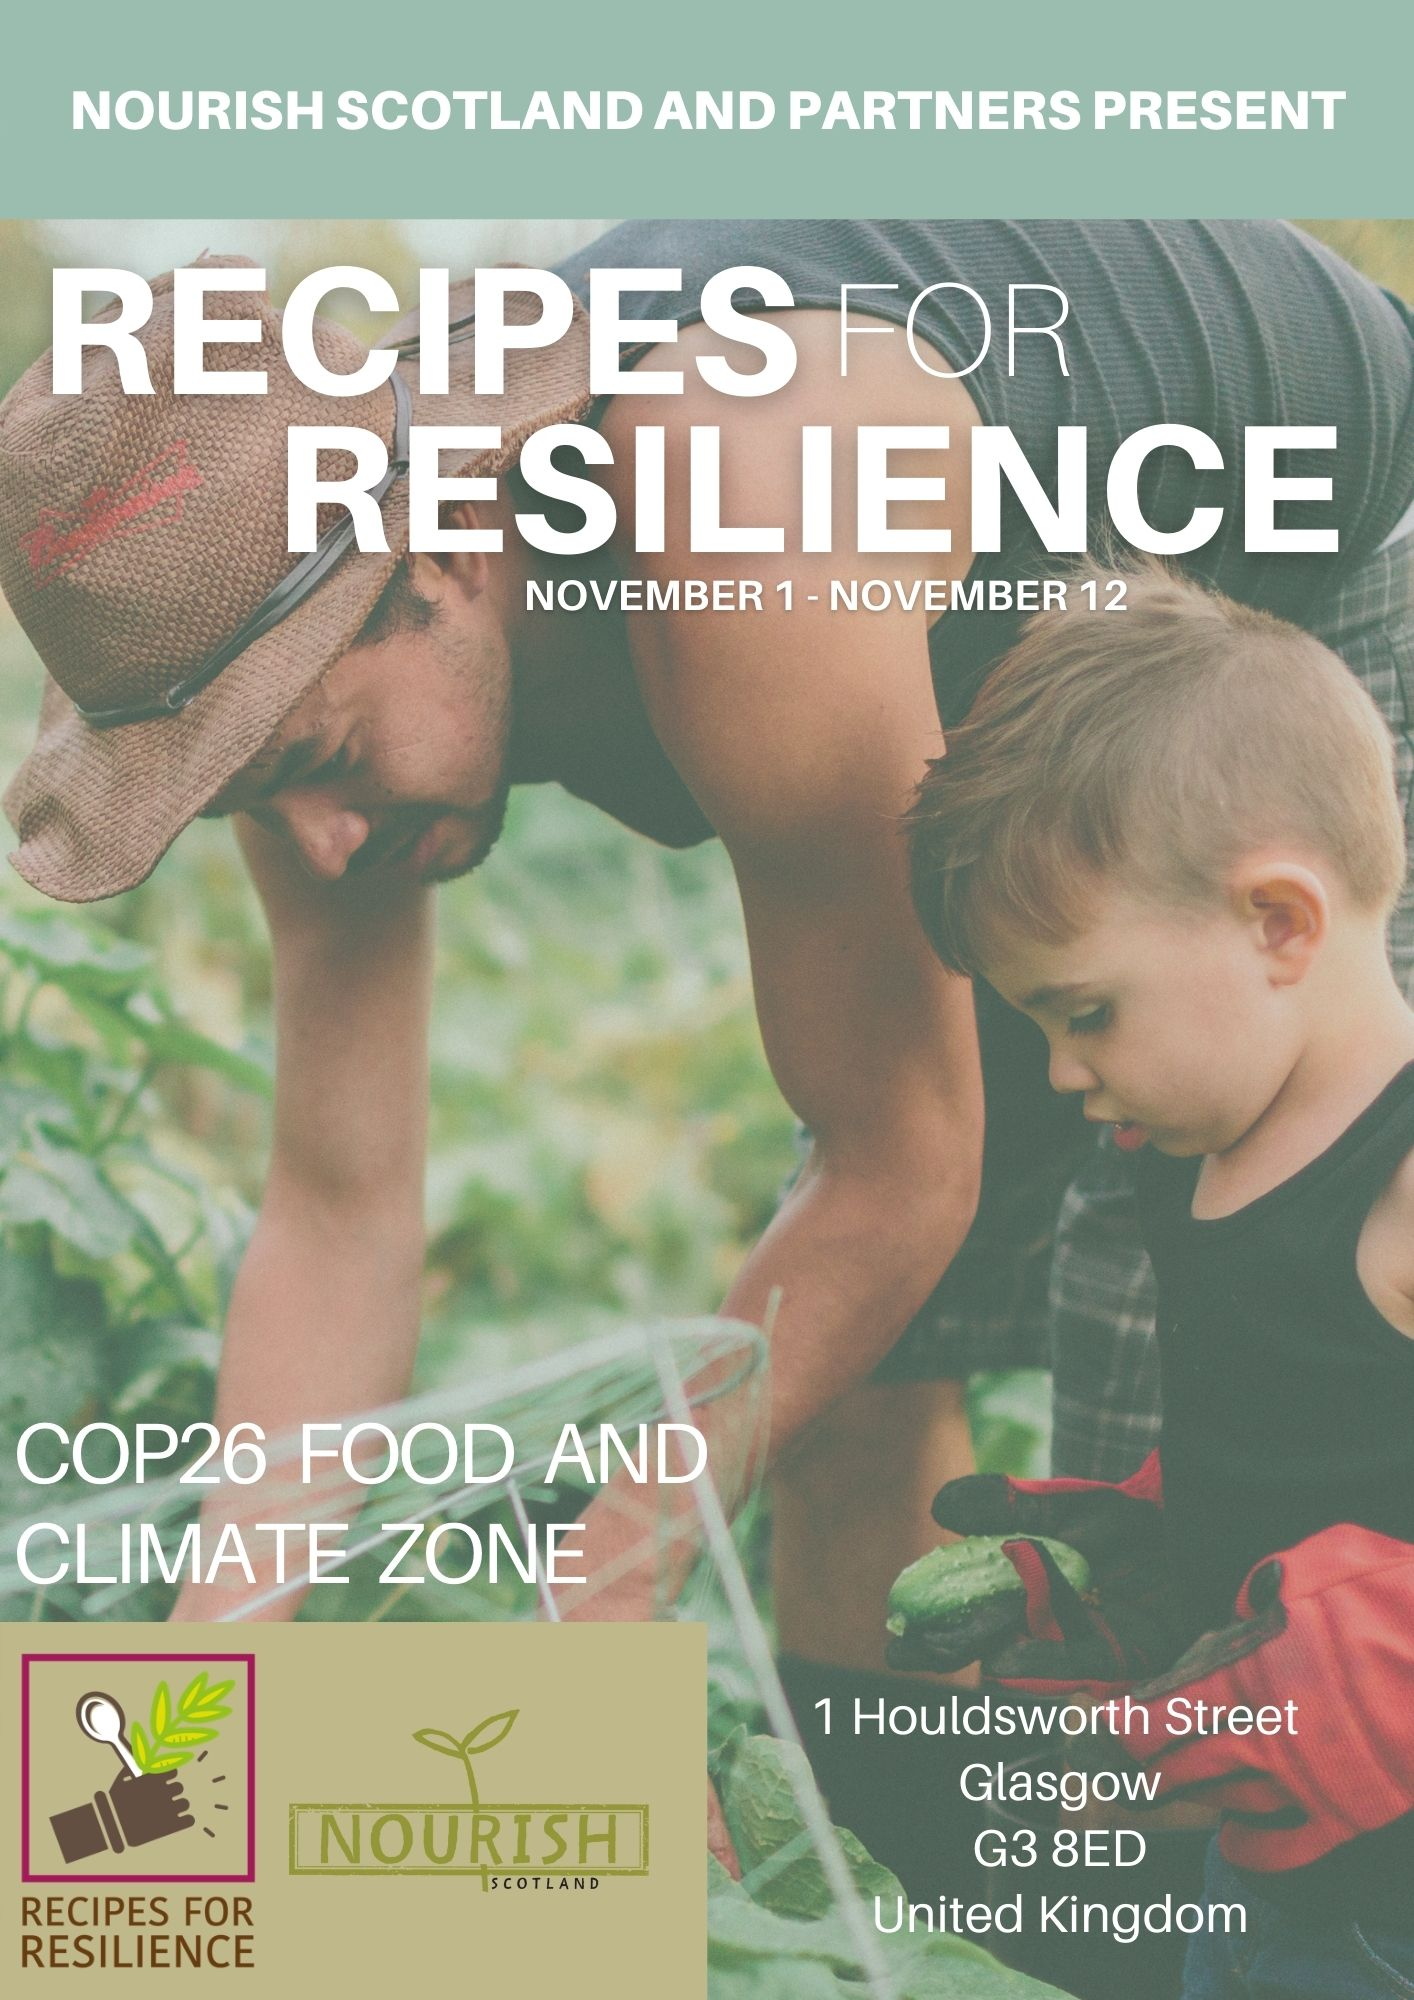 Recipes for Resilience Event Programme